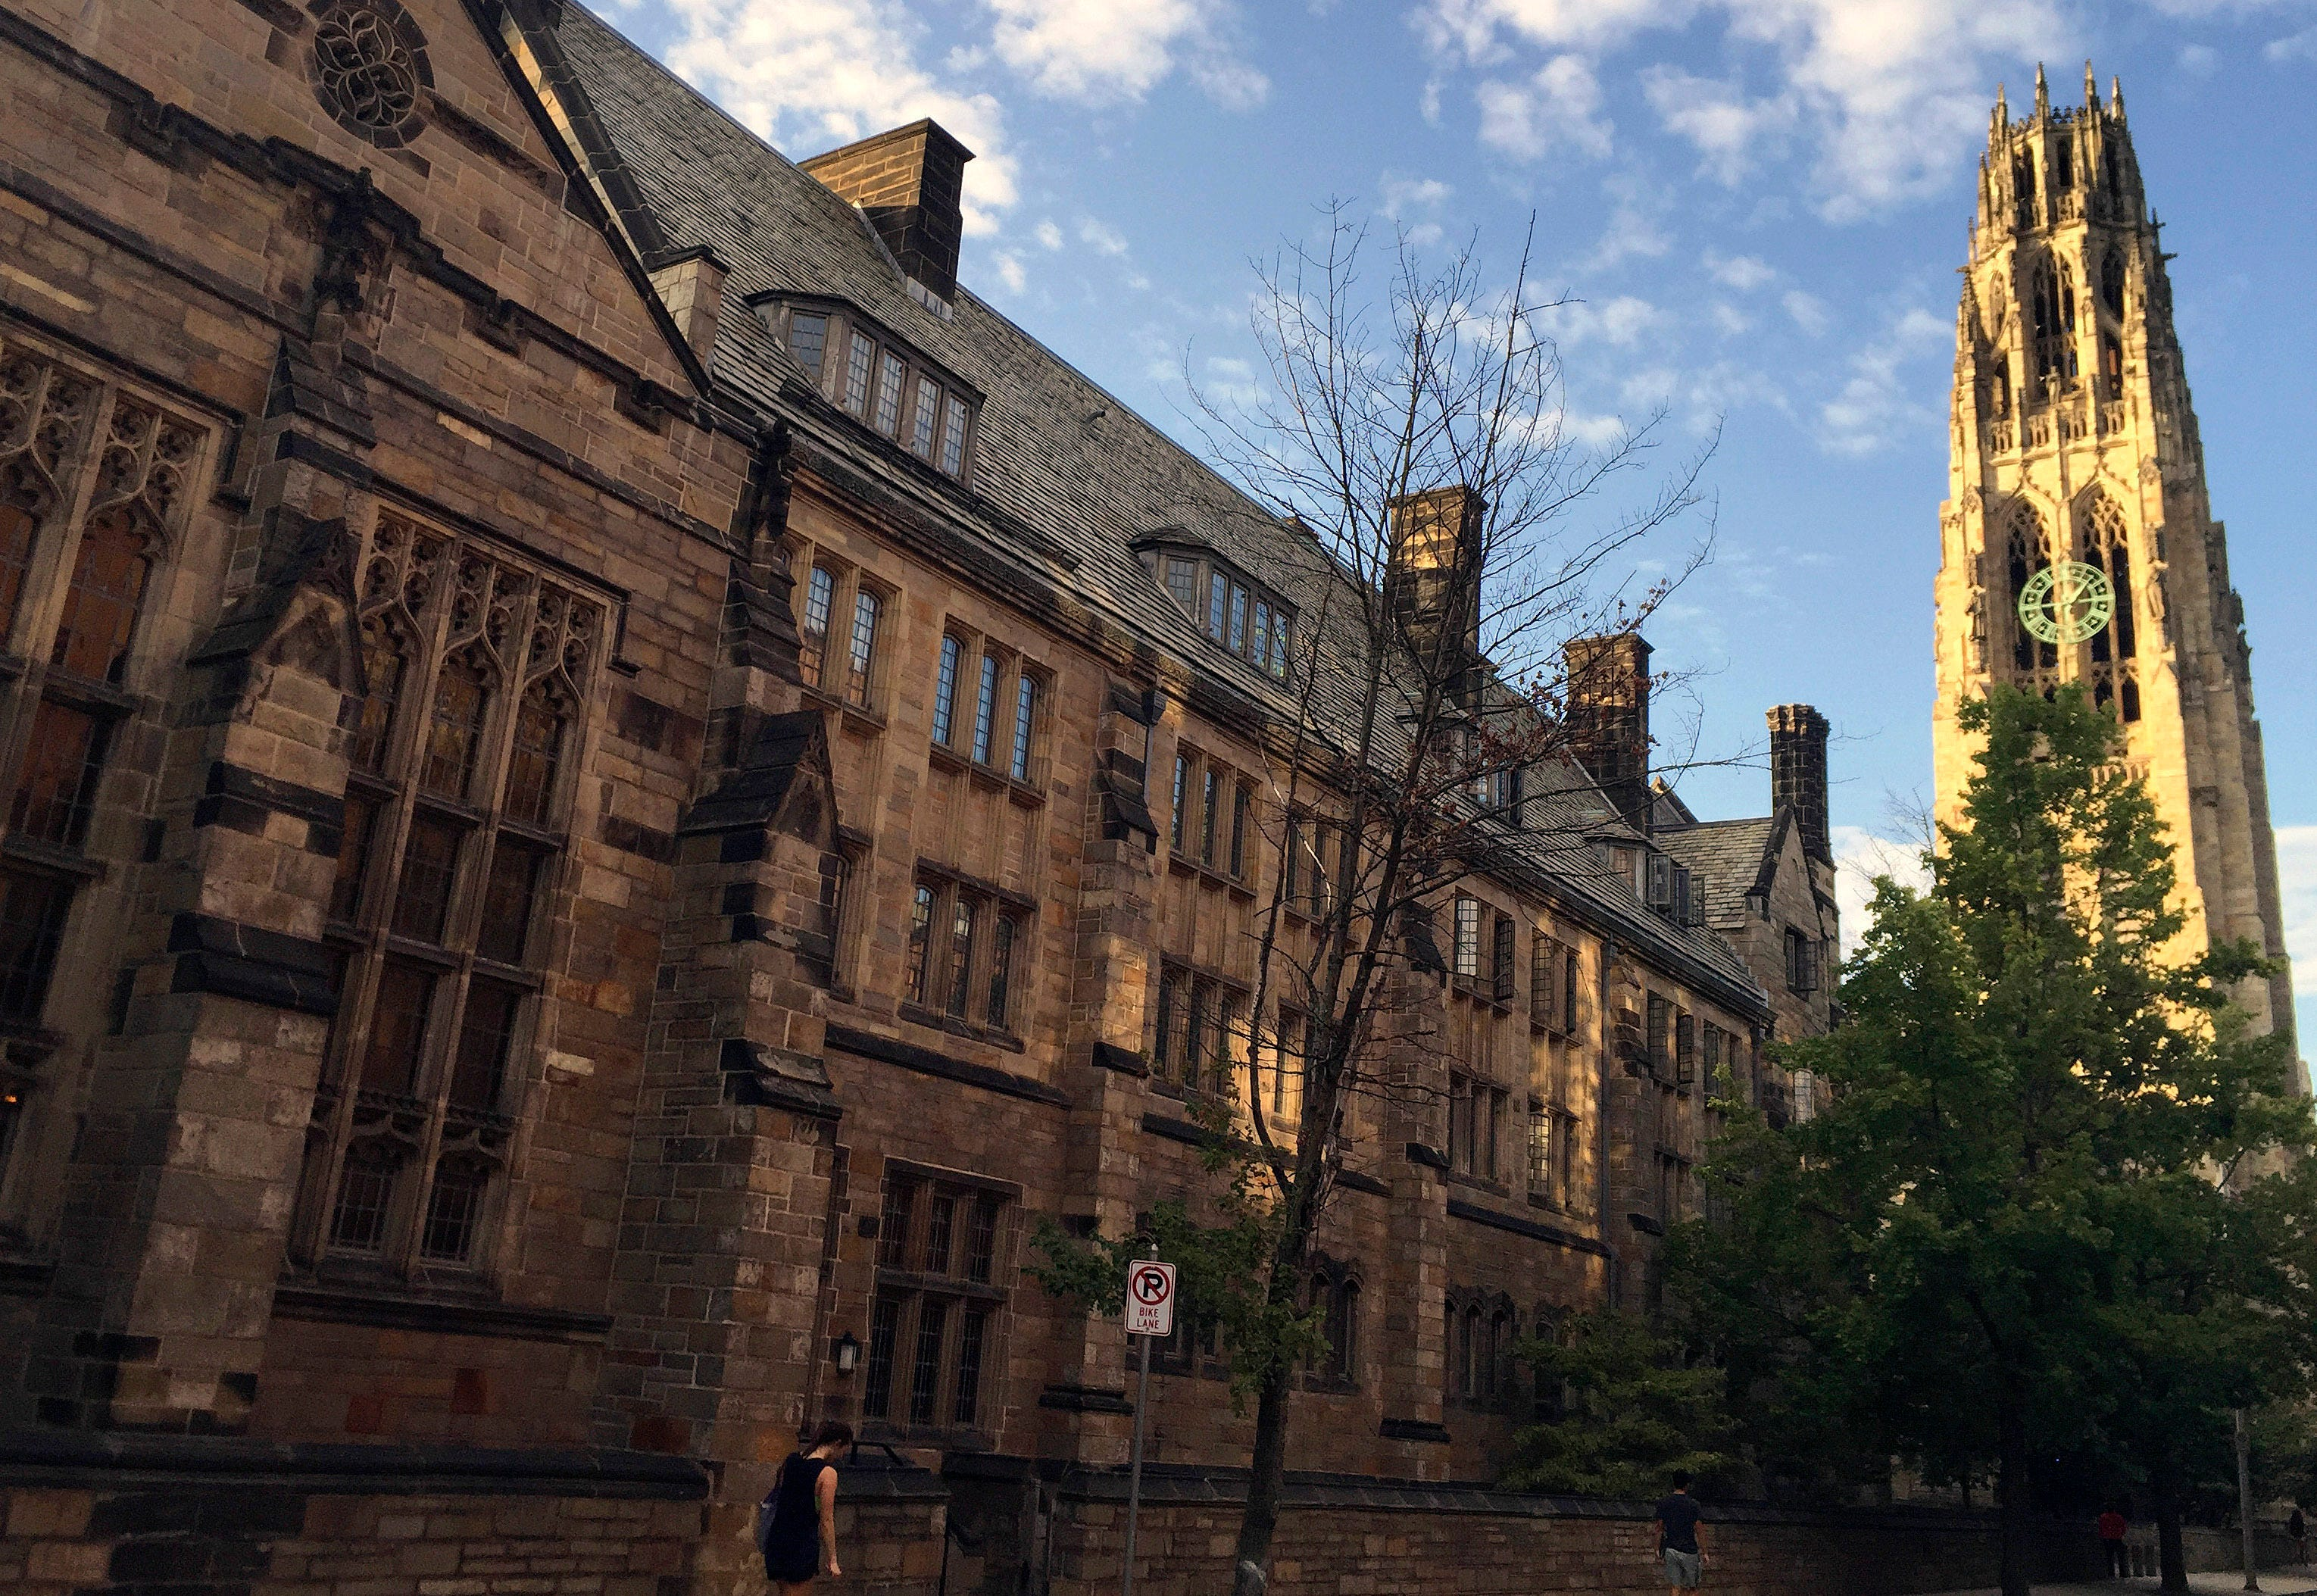 Lawsuit seeks to force all-male fraternities at Yale to allow women